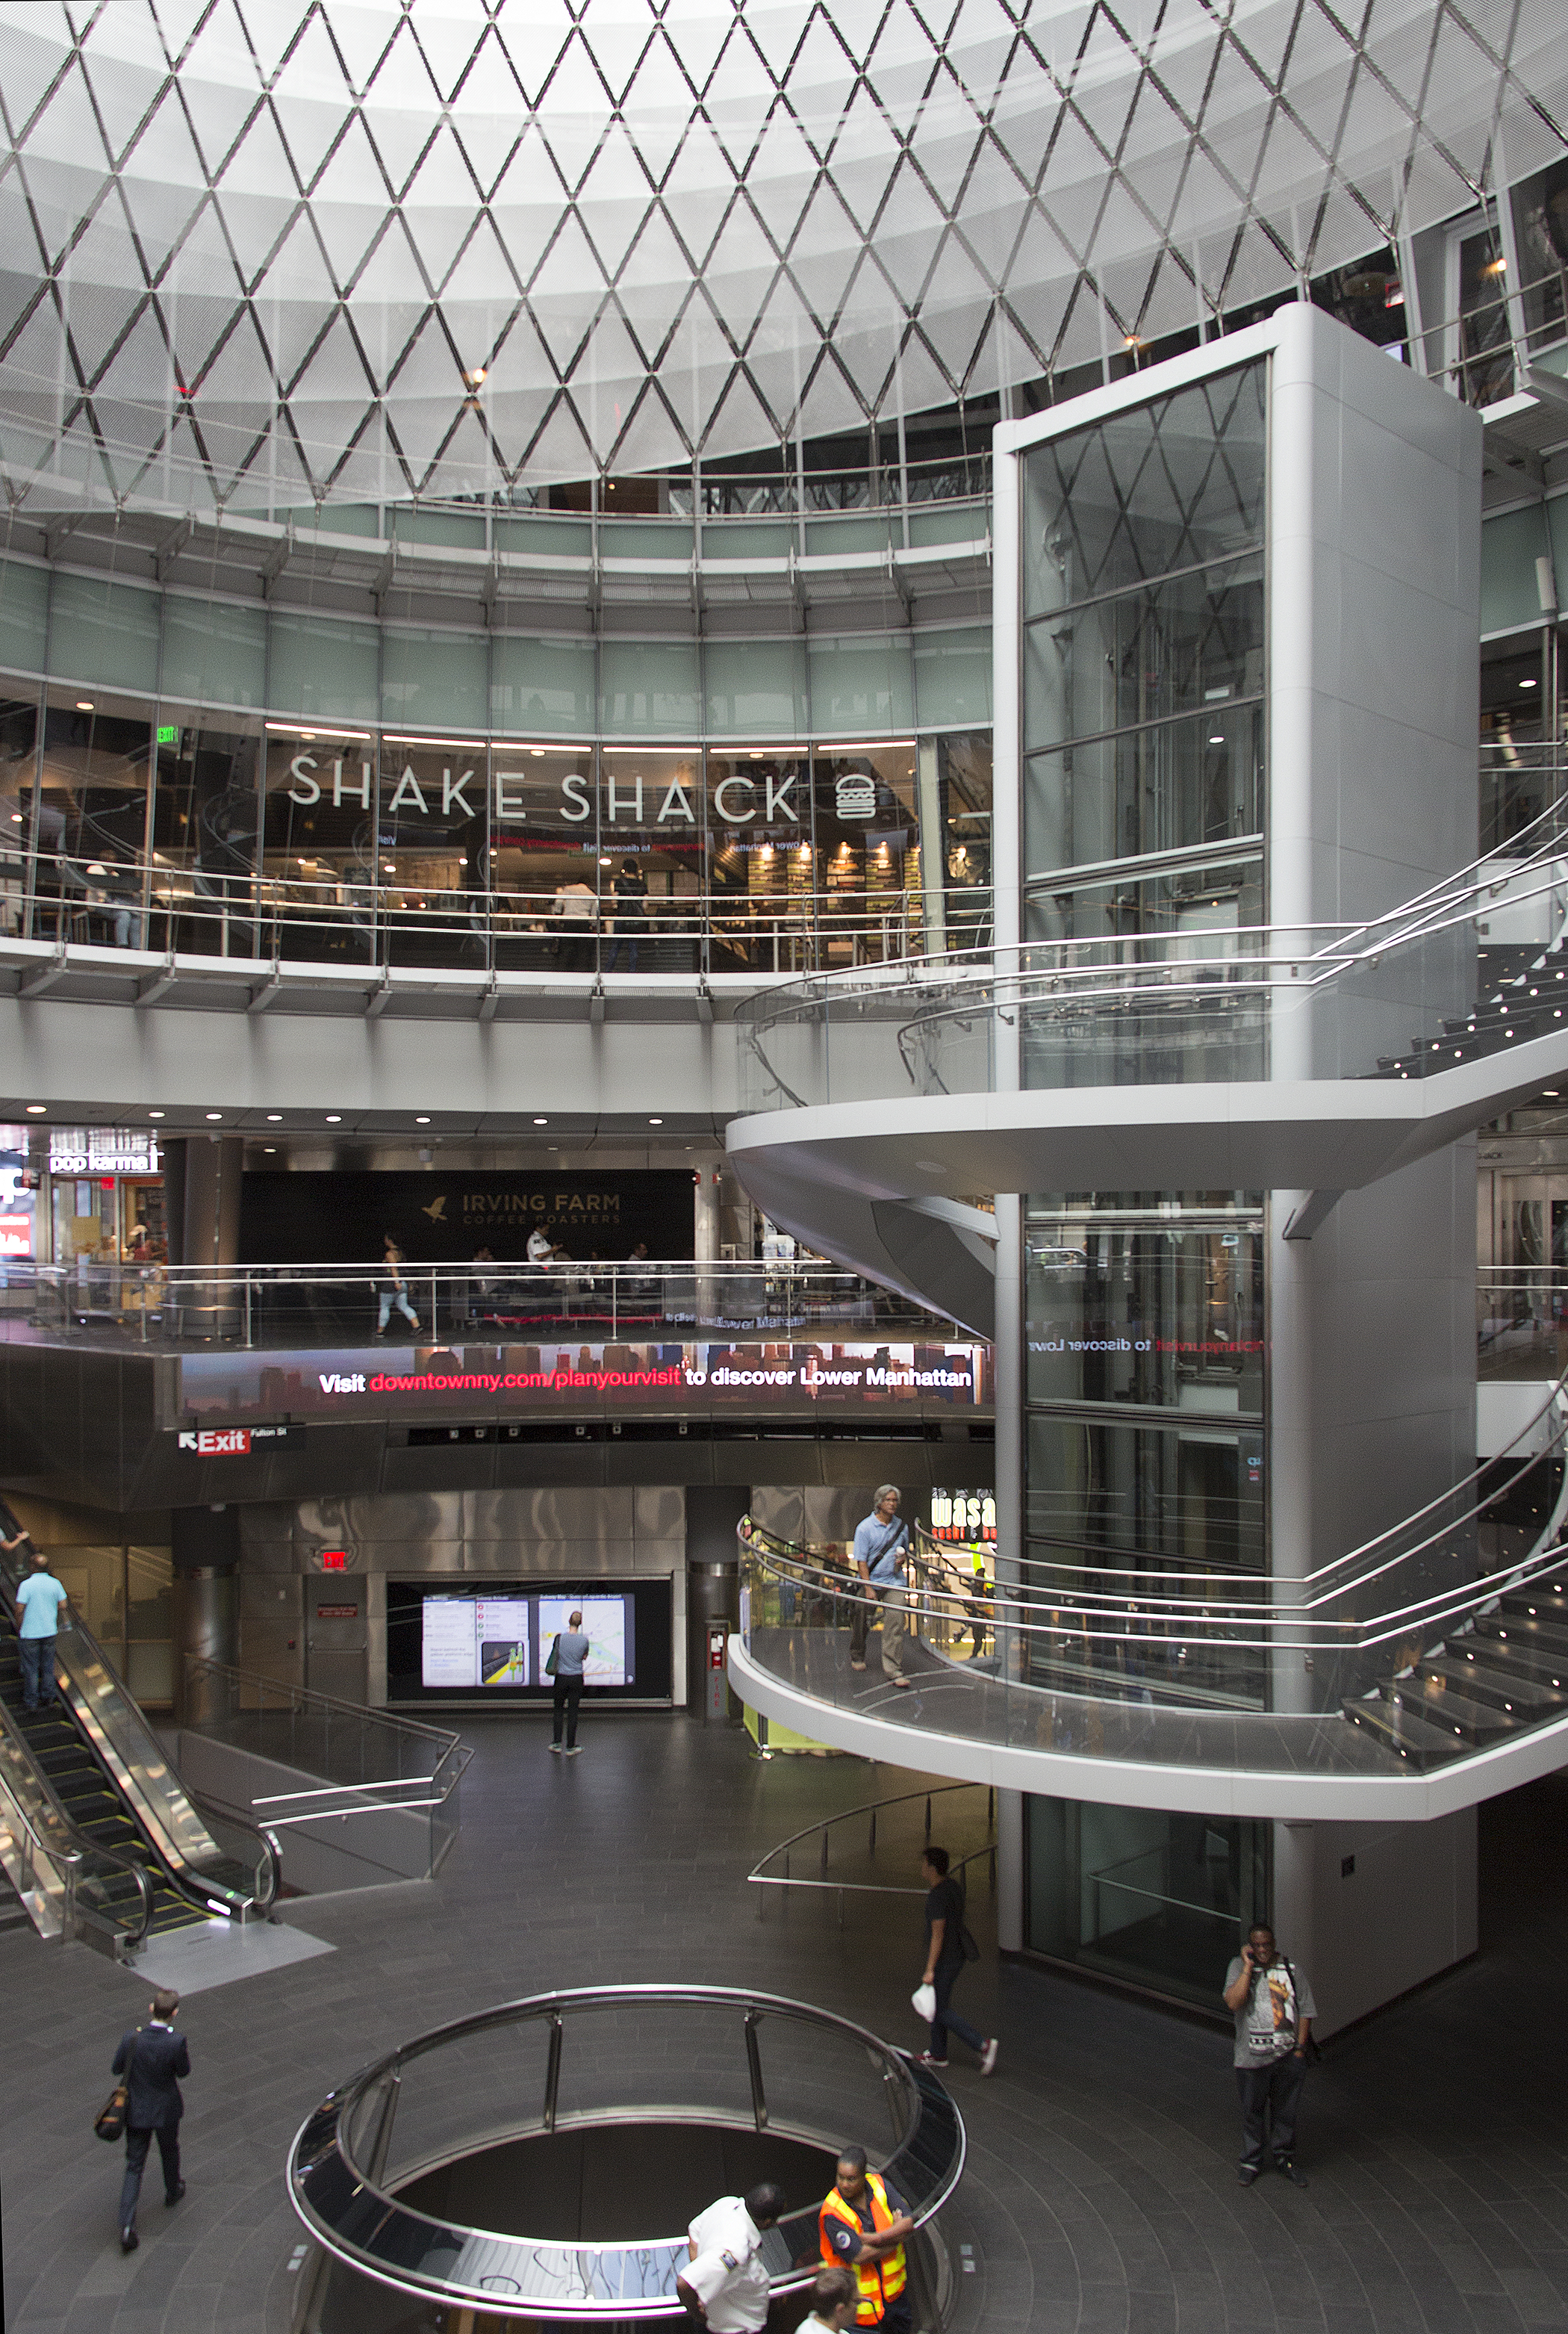 A view of the interior of Fulton Center featuring Shake Shack, Irving Farm and Wasabi Sushi & Bento, New York.